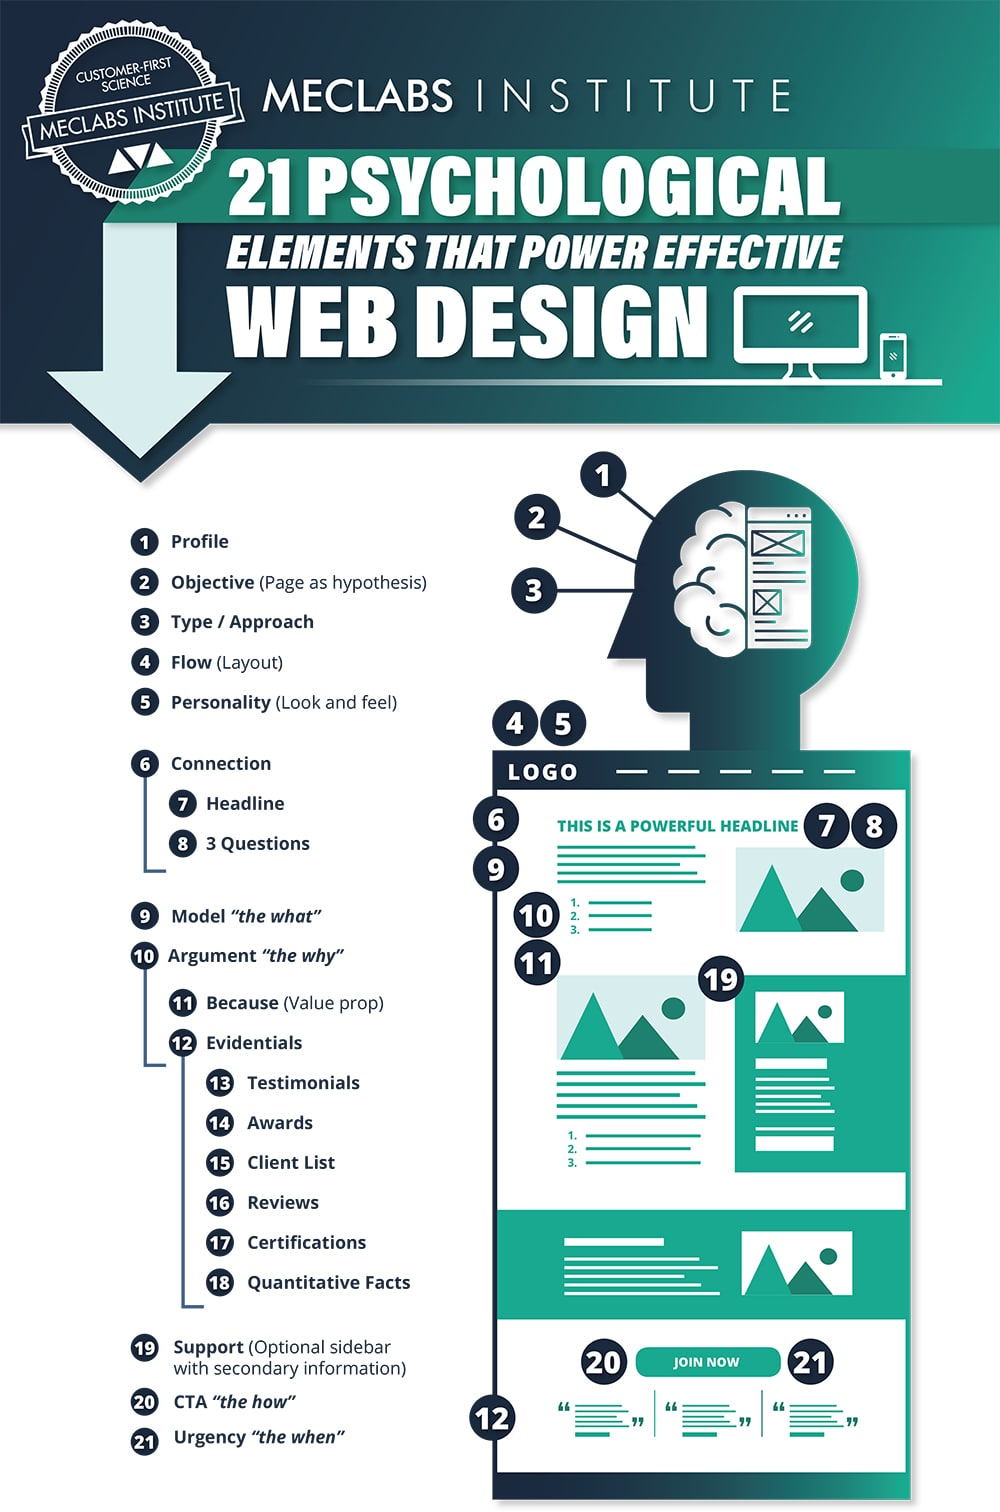 21 Psychological Elements For Powering Effective Web Design - Infographic